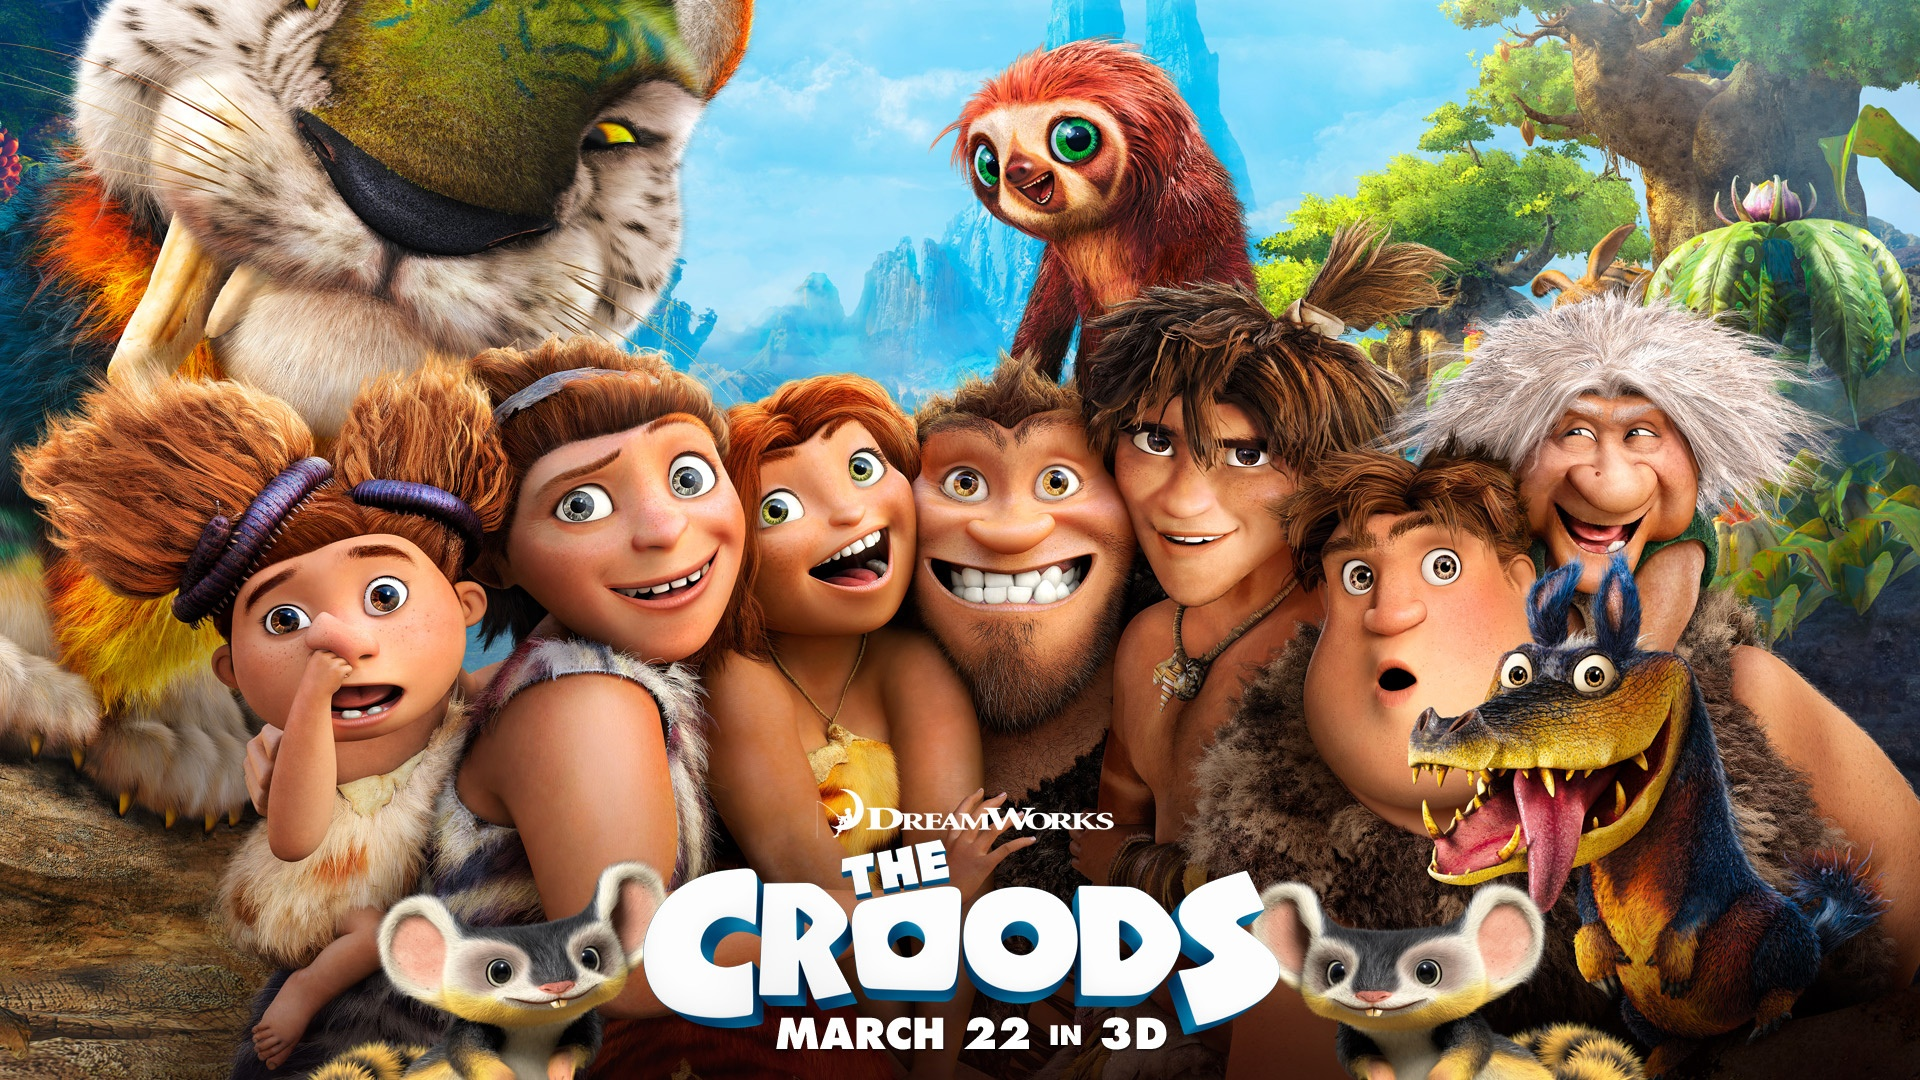 the croods 2 full movie download 480p